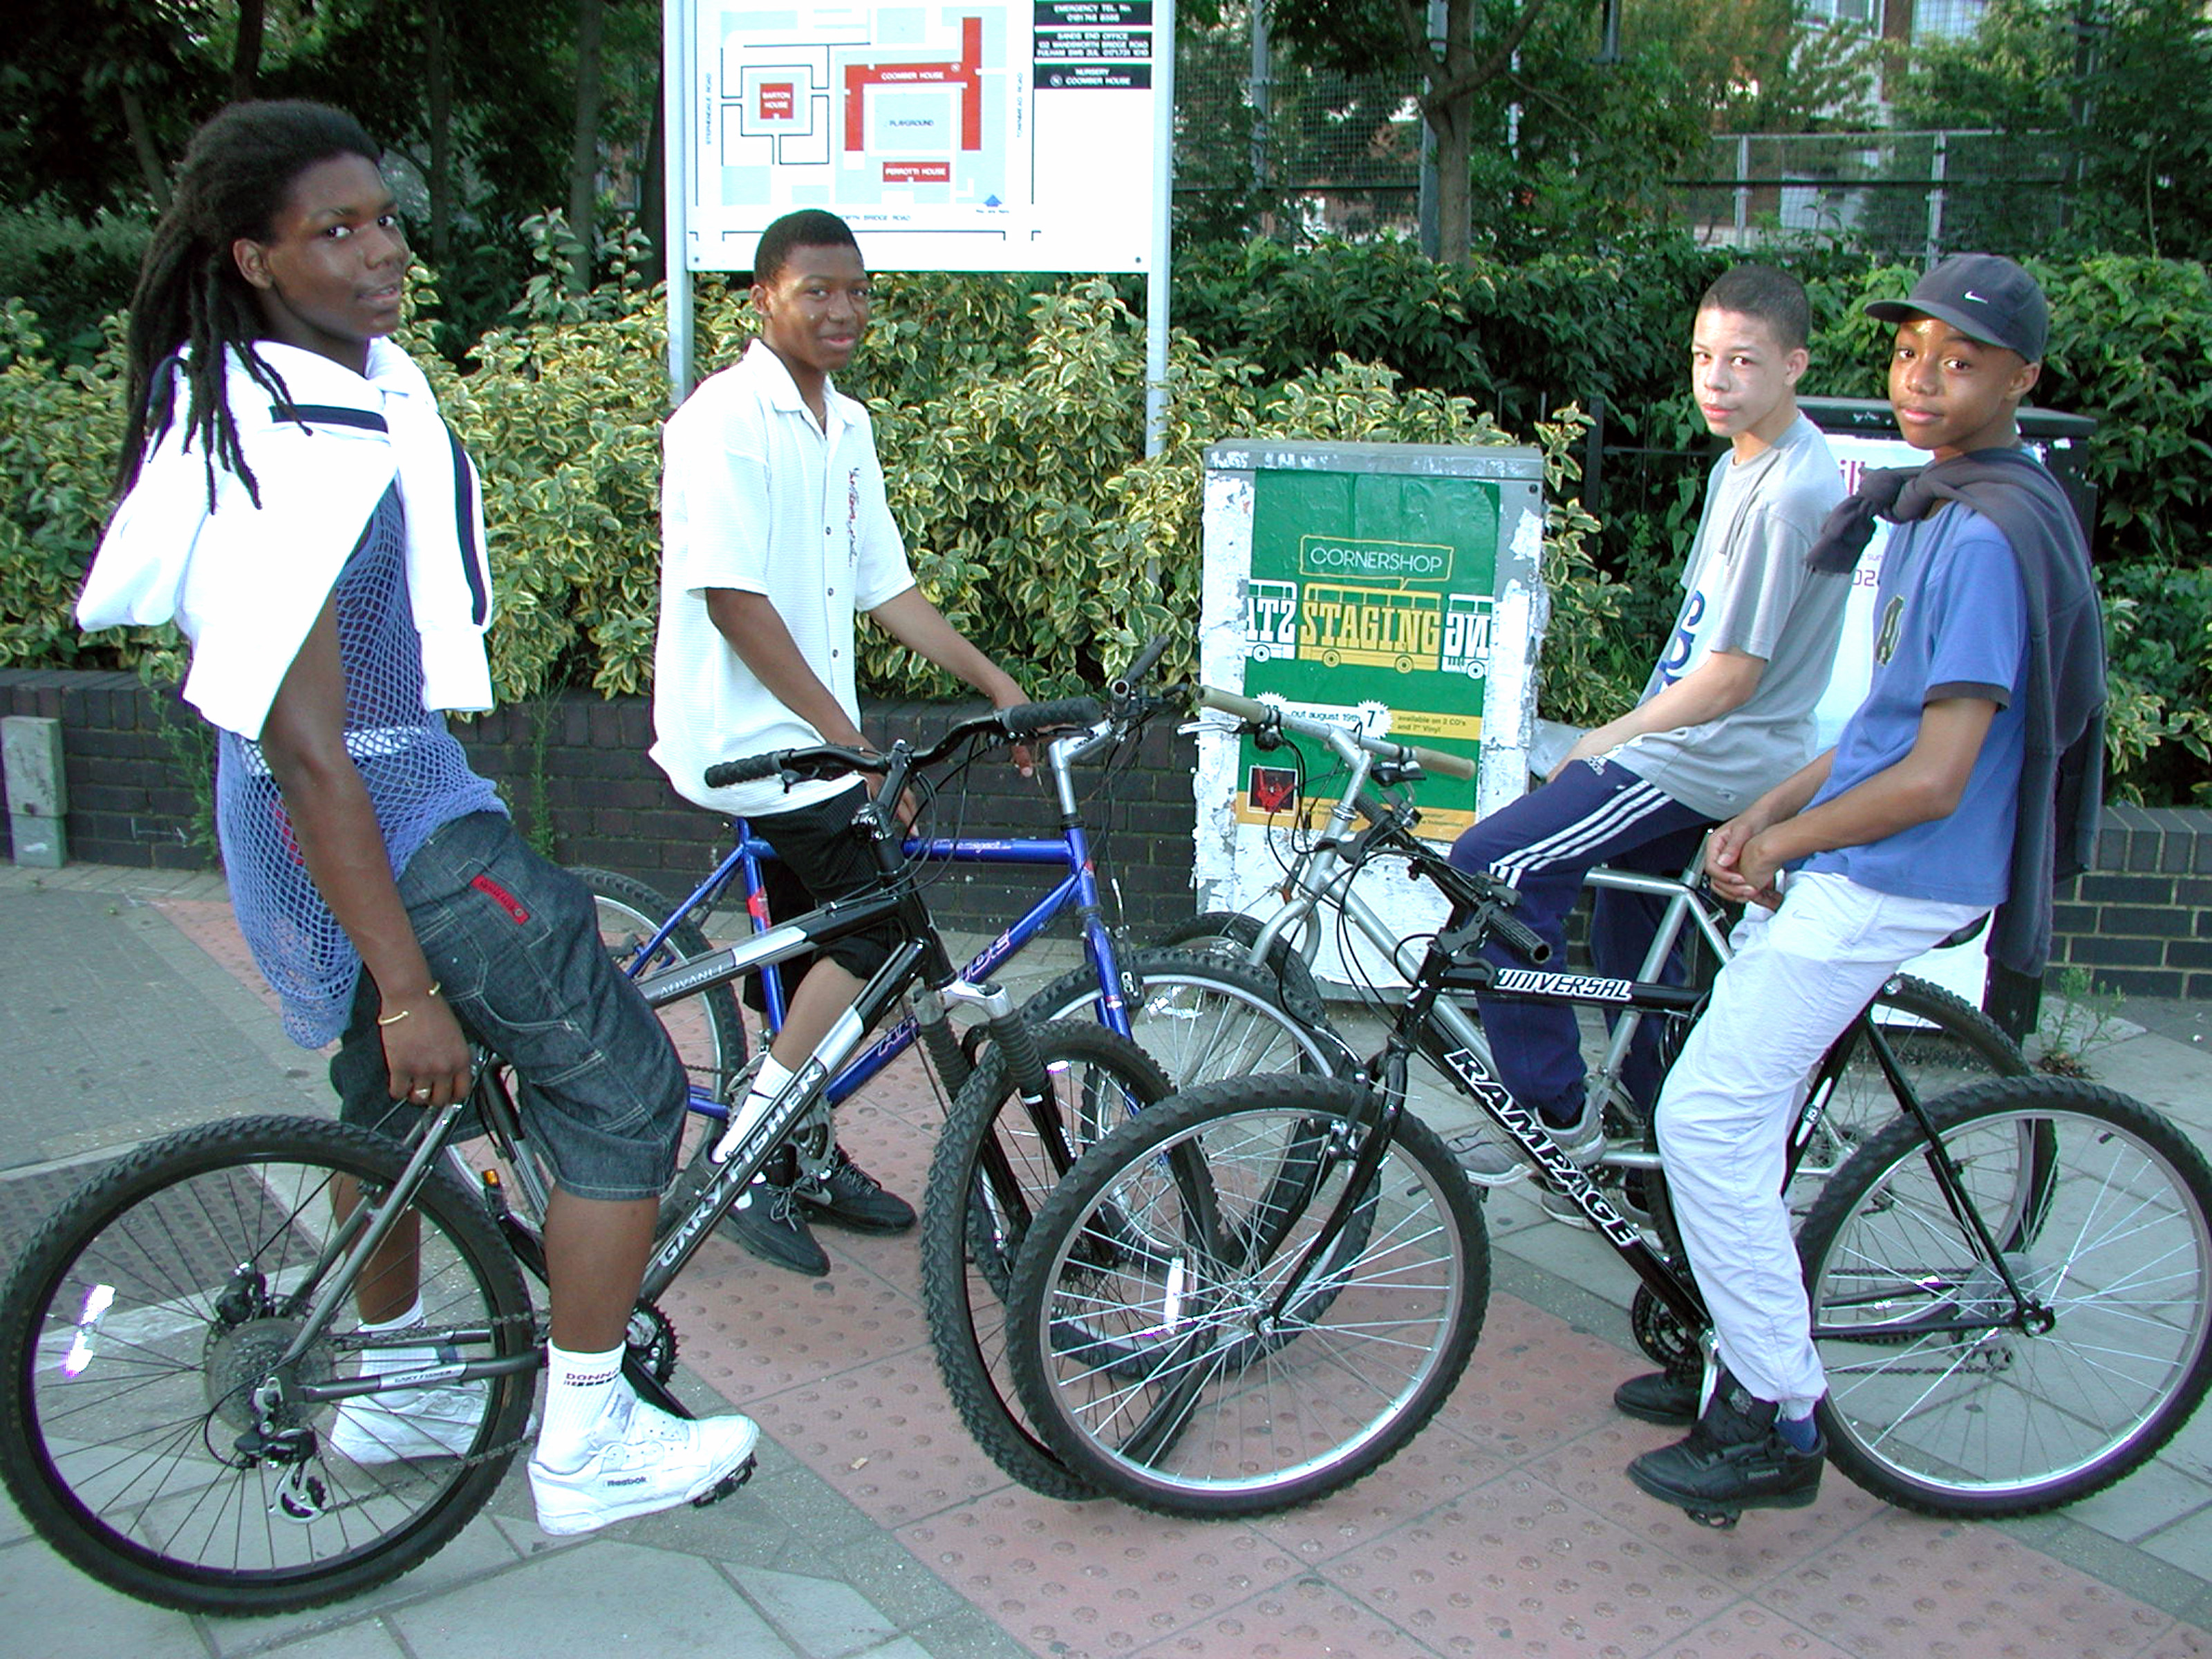 d5804ad2133 Hackney Cycle Loan Scheme  Borrow bike for month for just £10